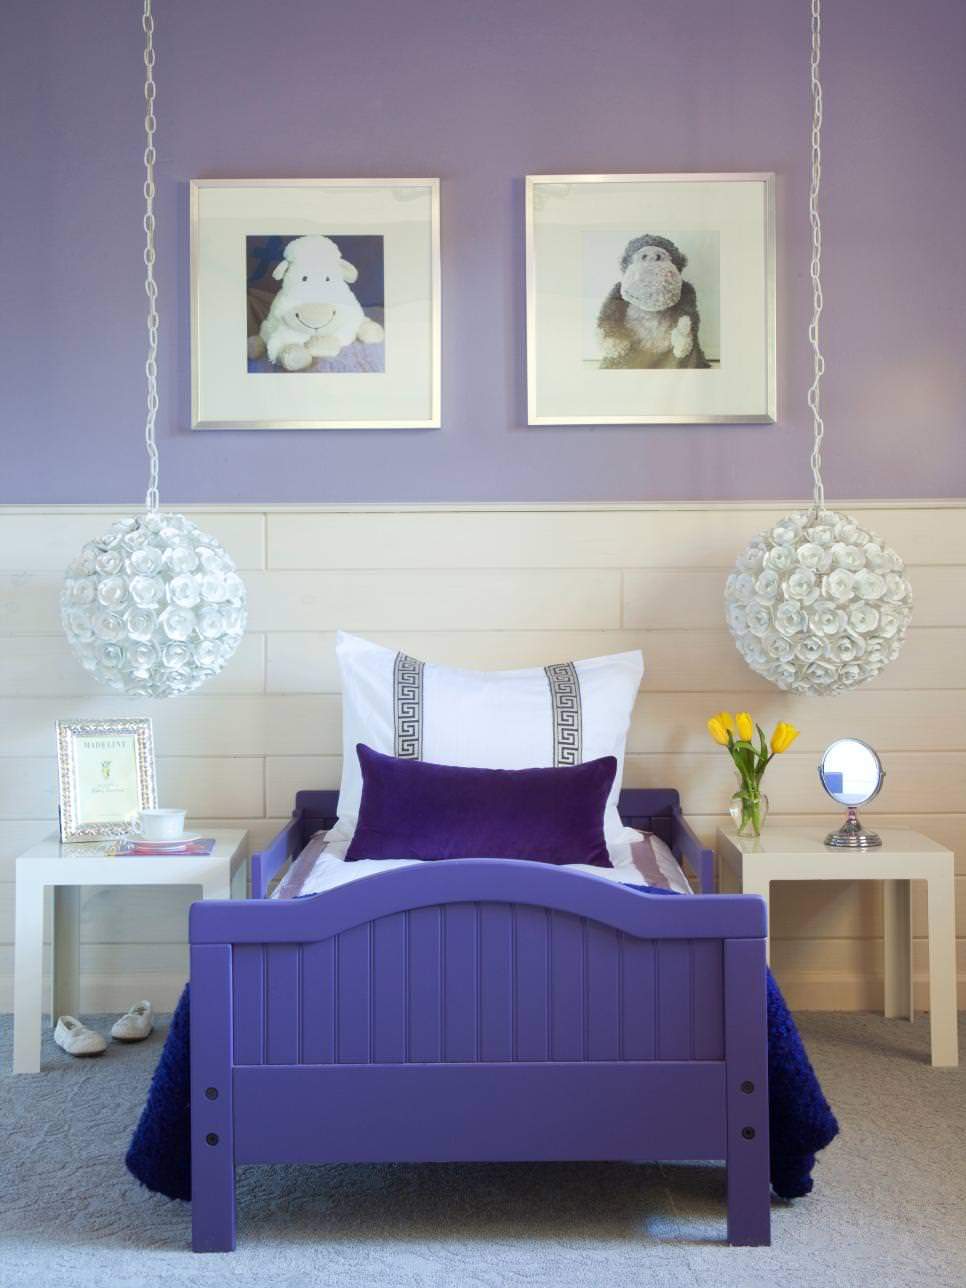 Room Design For Kid: 27+ Purple Childs Room Designs